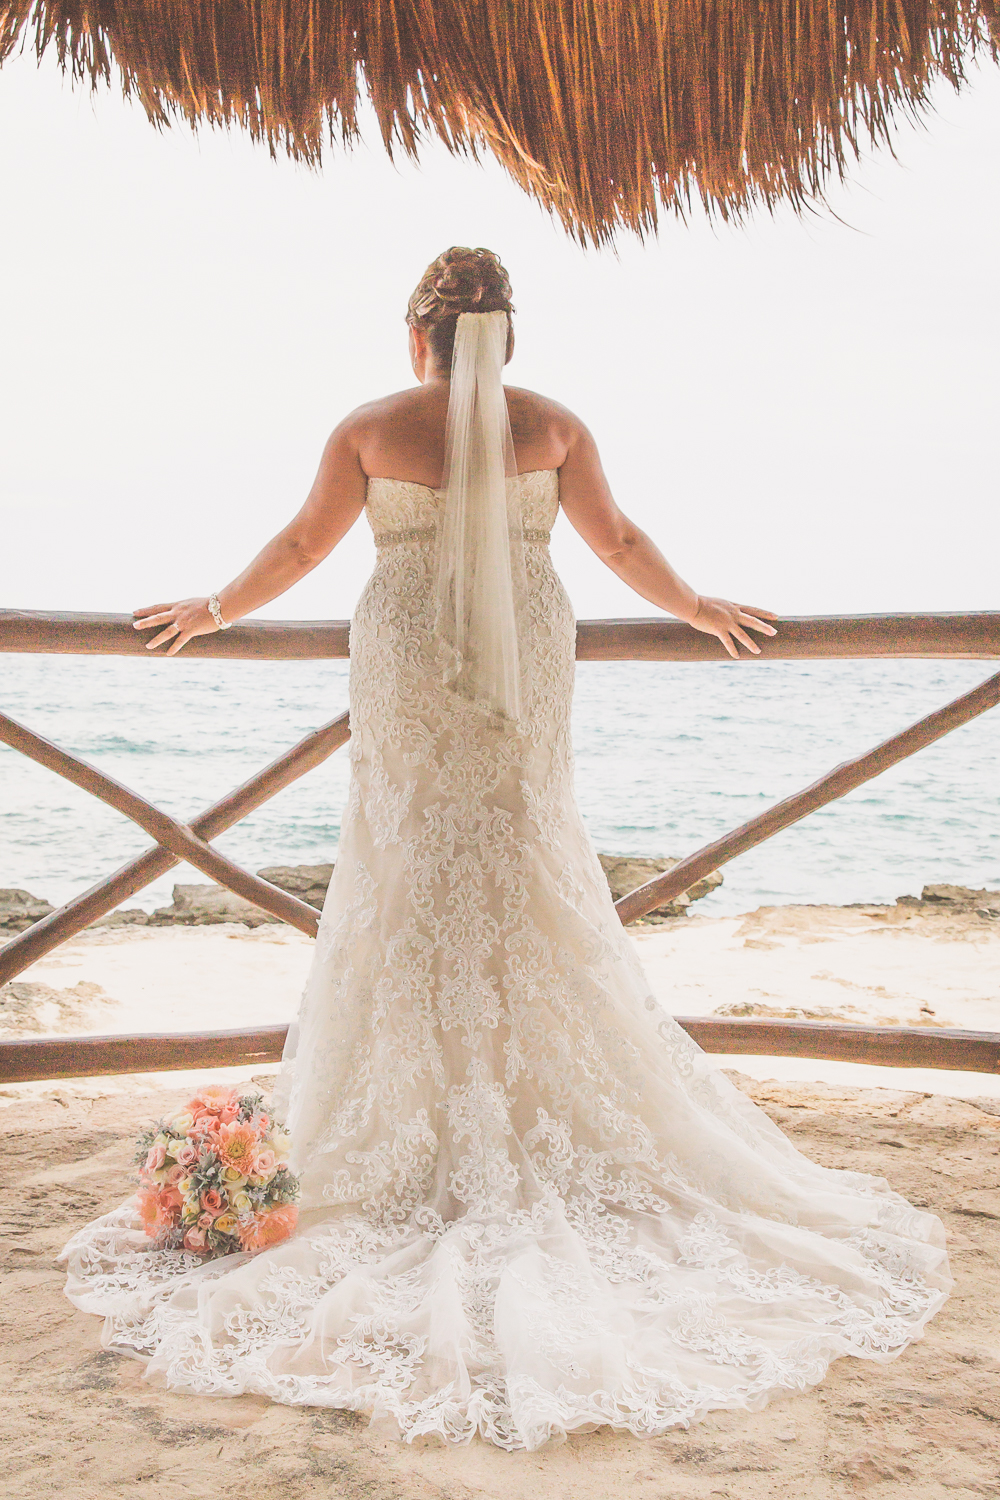 Riviera Maya Bridal Session